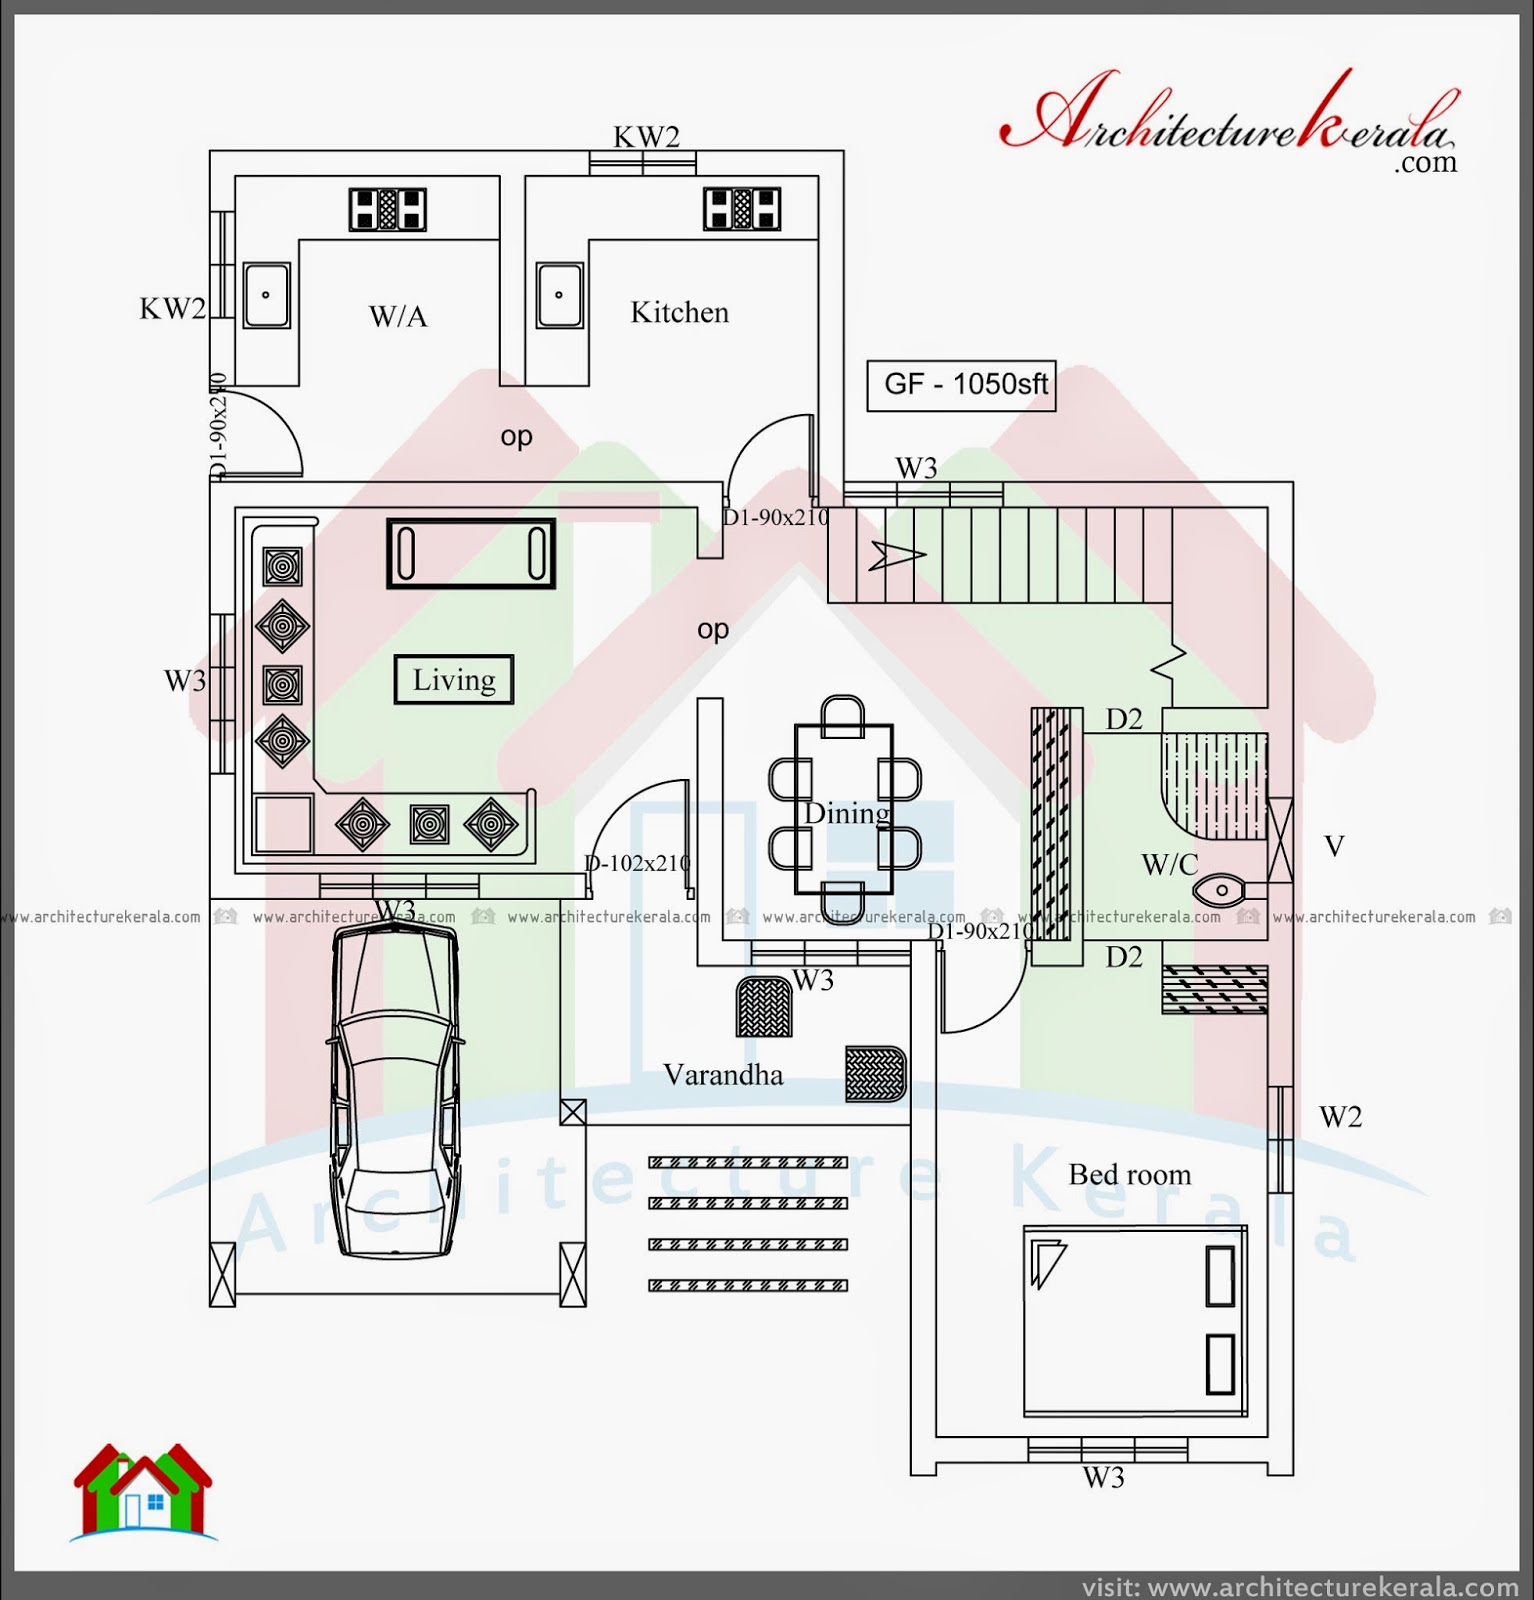 Three bedroom two storey house plan architecture kerala for Two story house plans